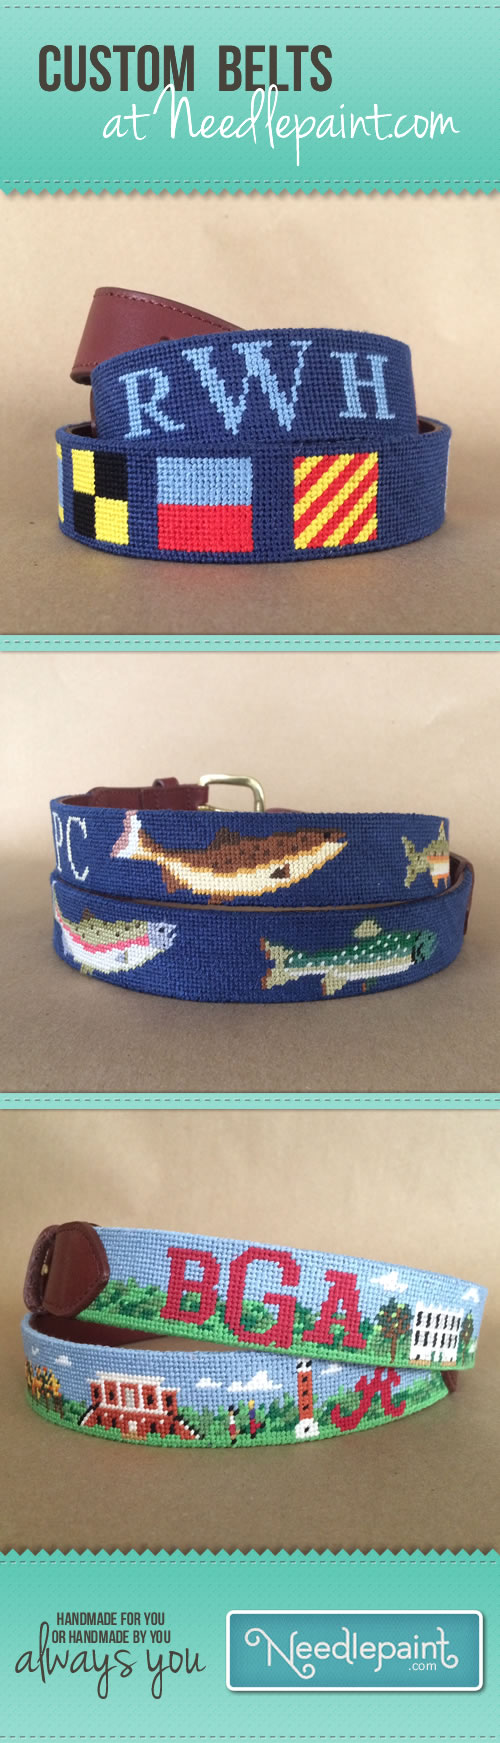 Custom Needlepoint Belts